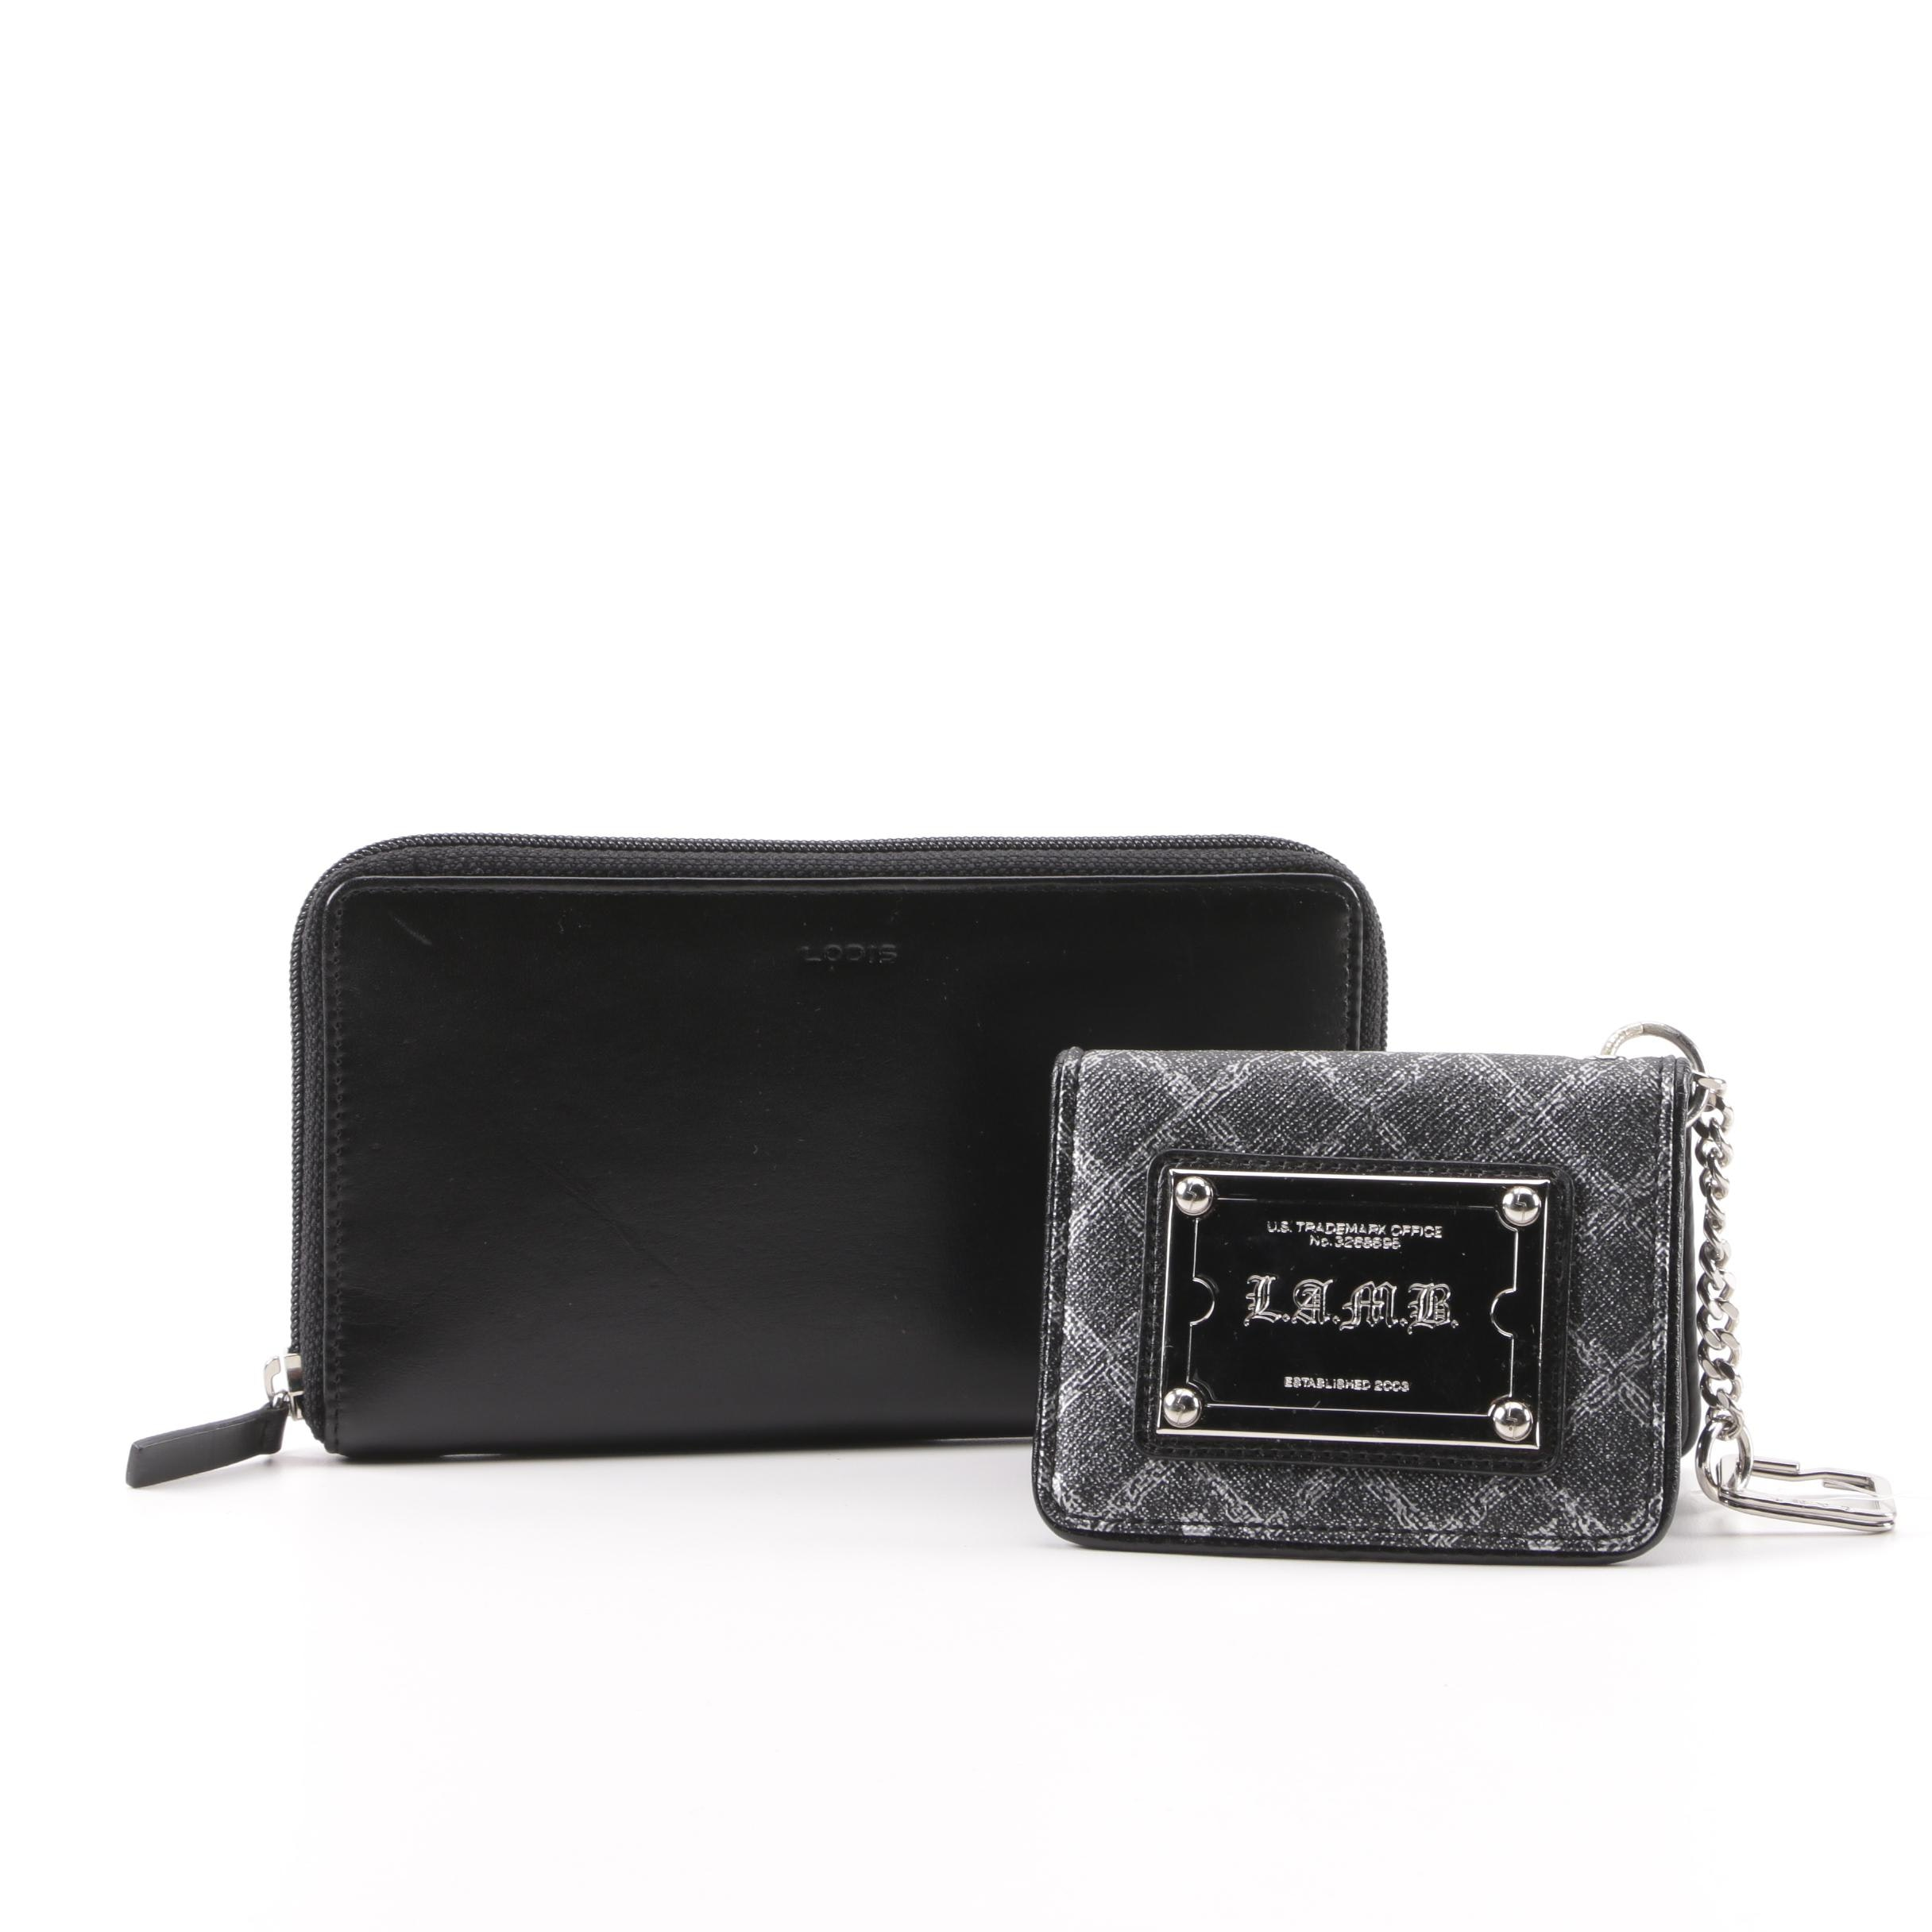 Lodis Black Leather Zipper Wallet and L.A.M.B. Saffiano Leather Keychain Wallet